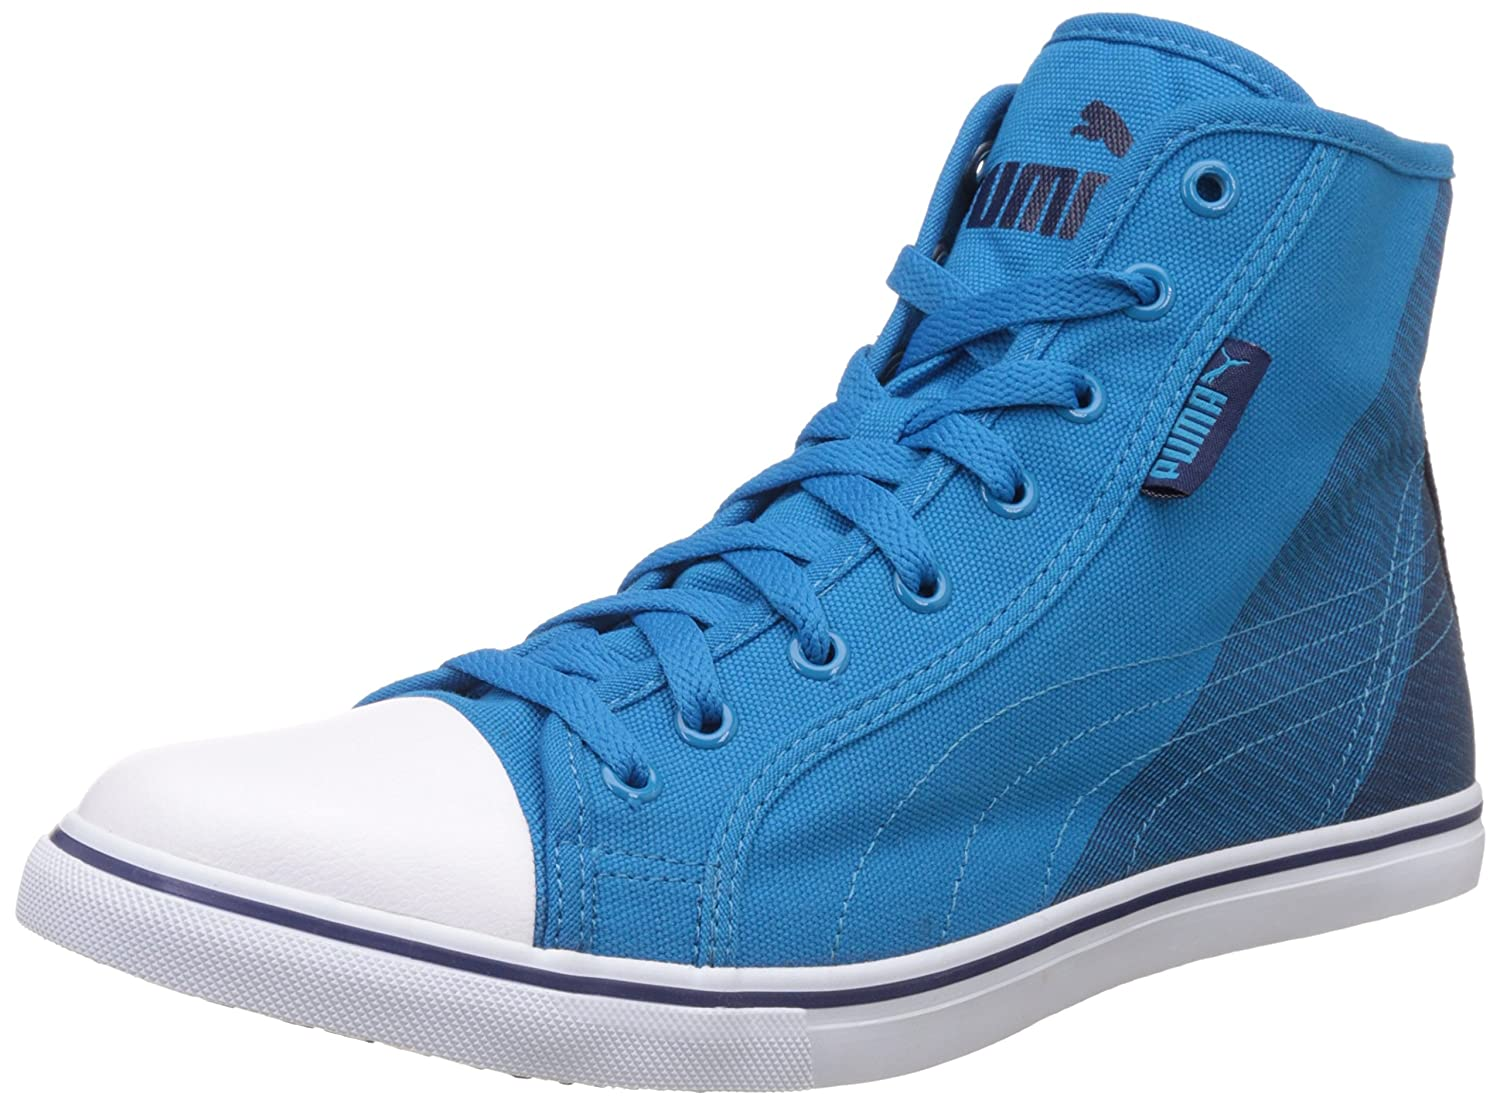 a2052b30c235 Puma Men s Drongos DP Sneakers  Buy Online at Low Prices in India ...